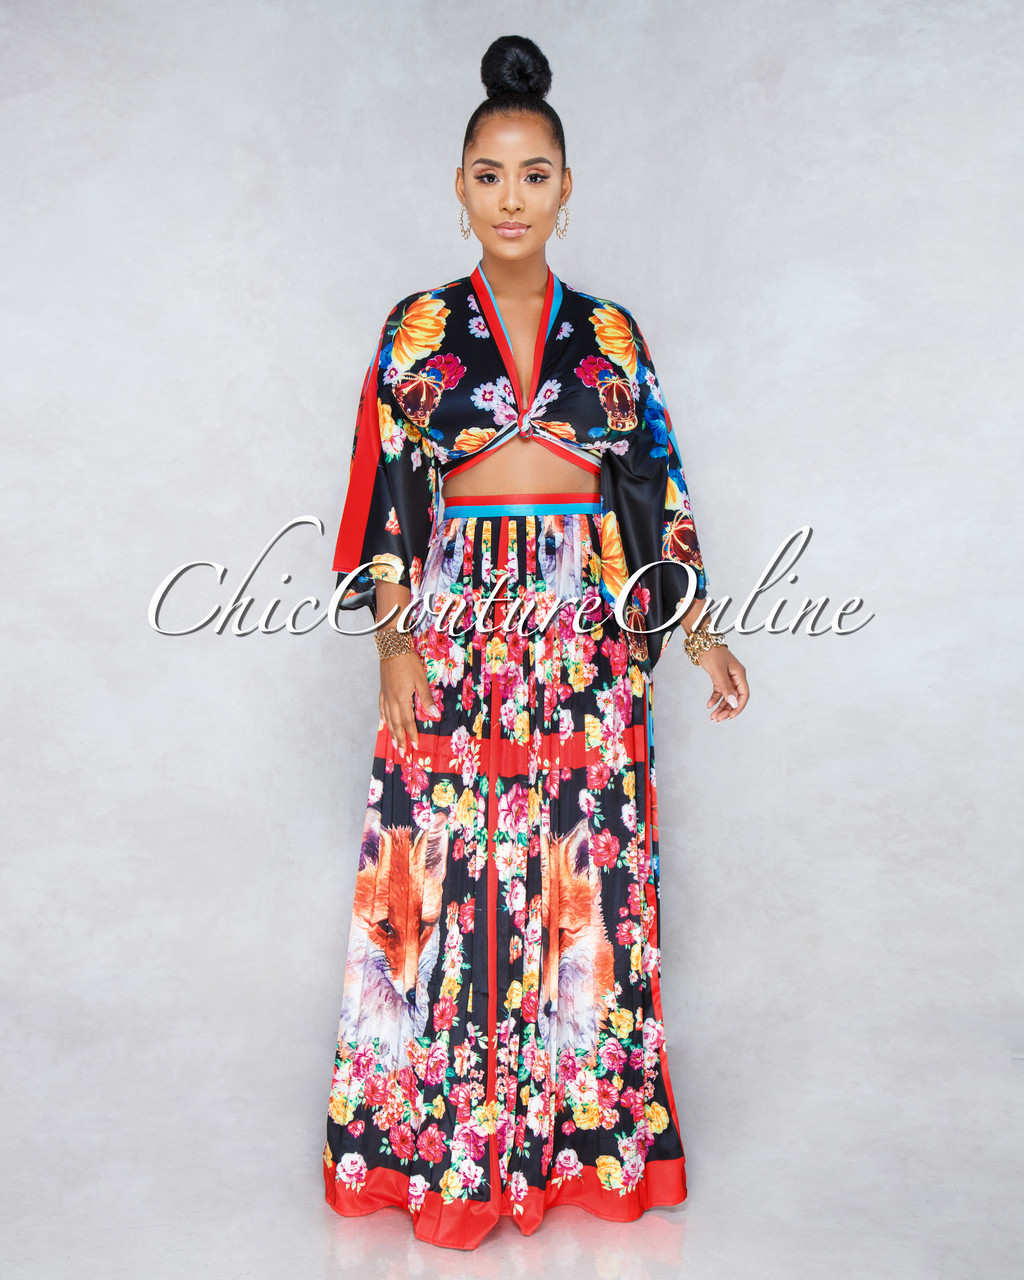 9fde1da9f417 Foxy Black Multi-Color Print Two Piece Pleated Skirt Set. Price: $85.00. or  4 interest-free installments of $21.25 by Afterpay ⓘ. Image 1